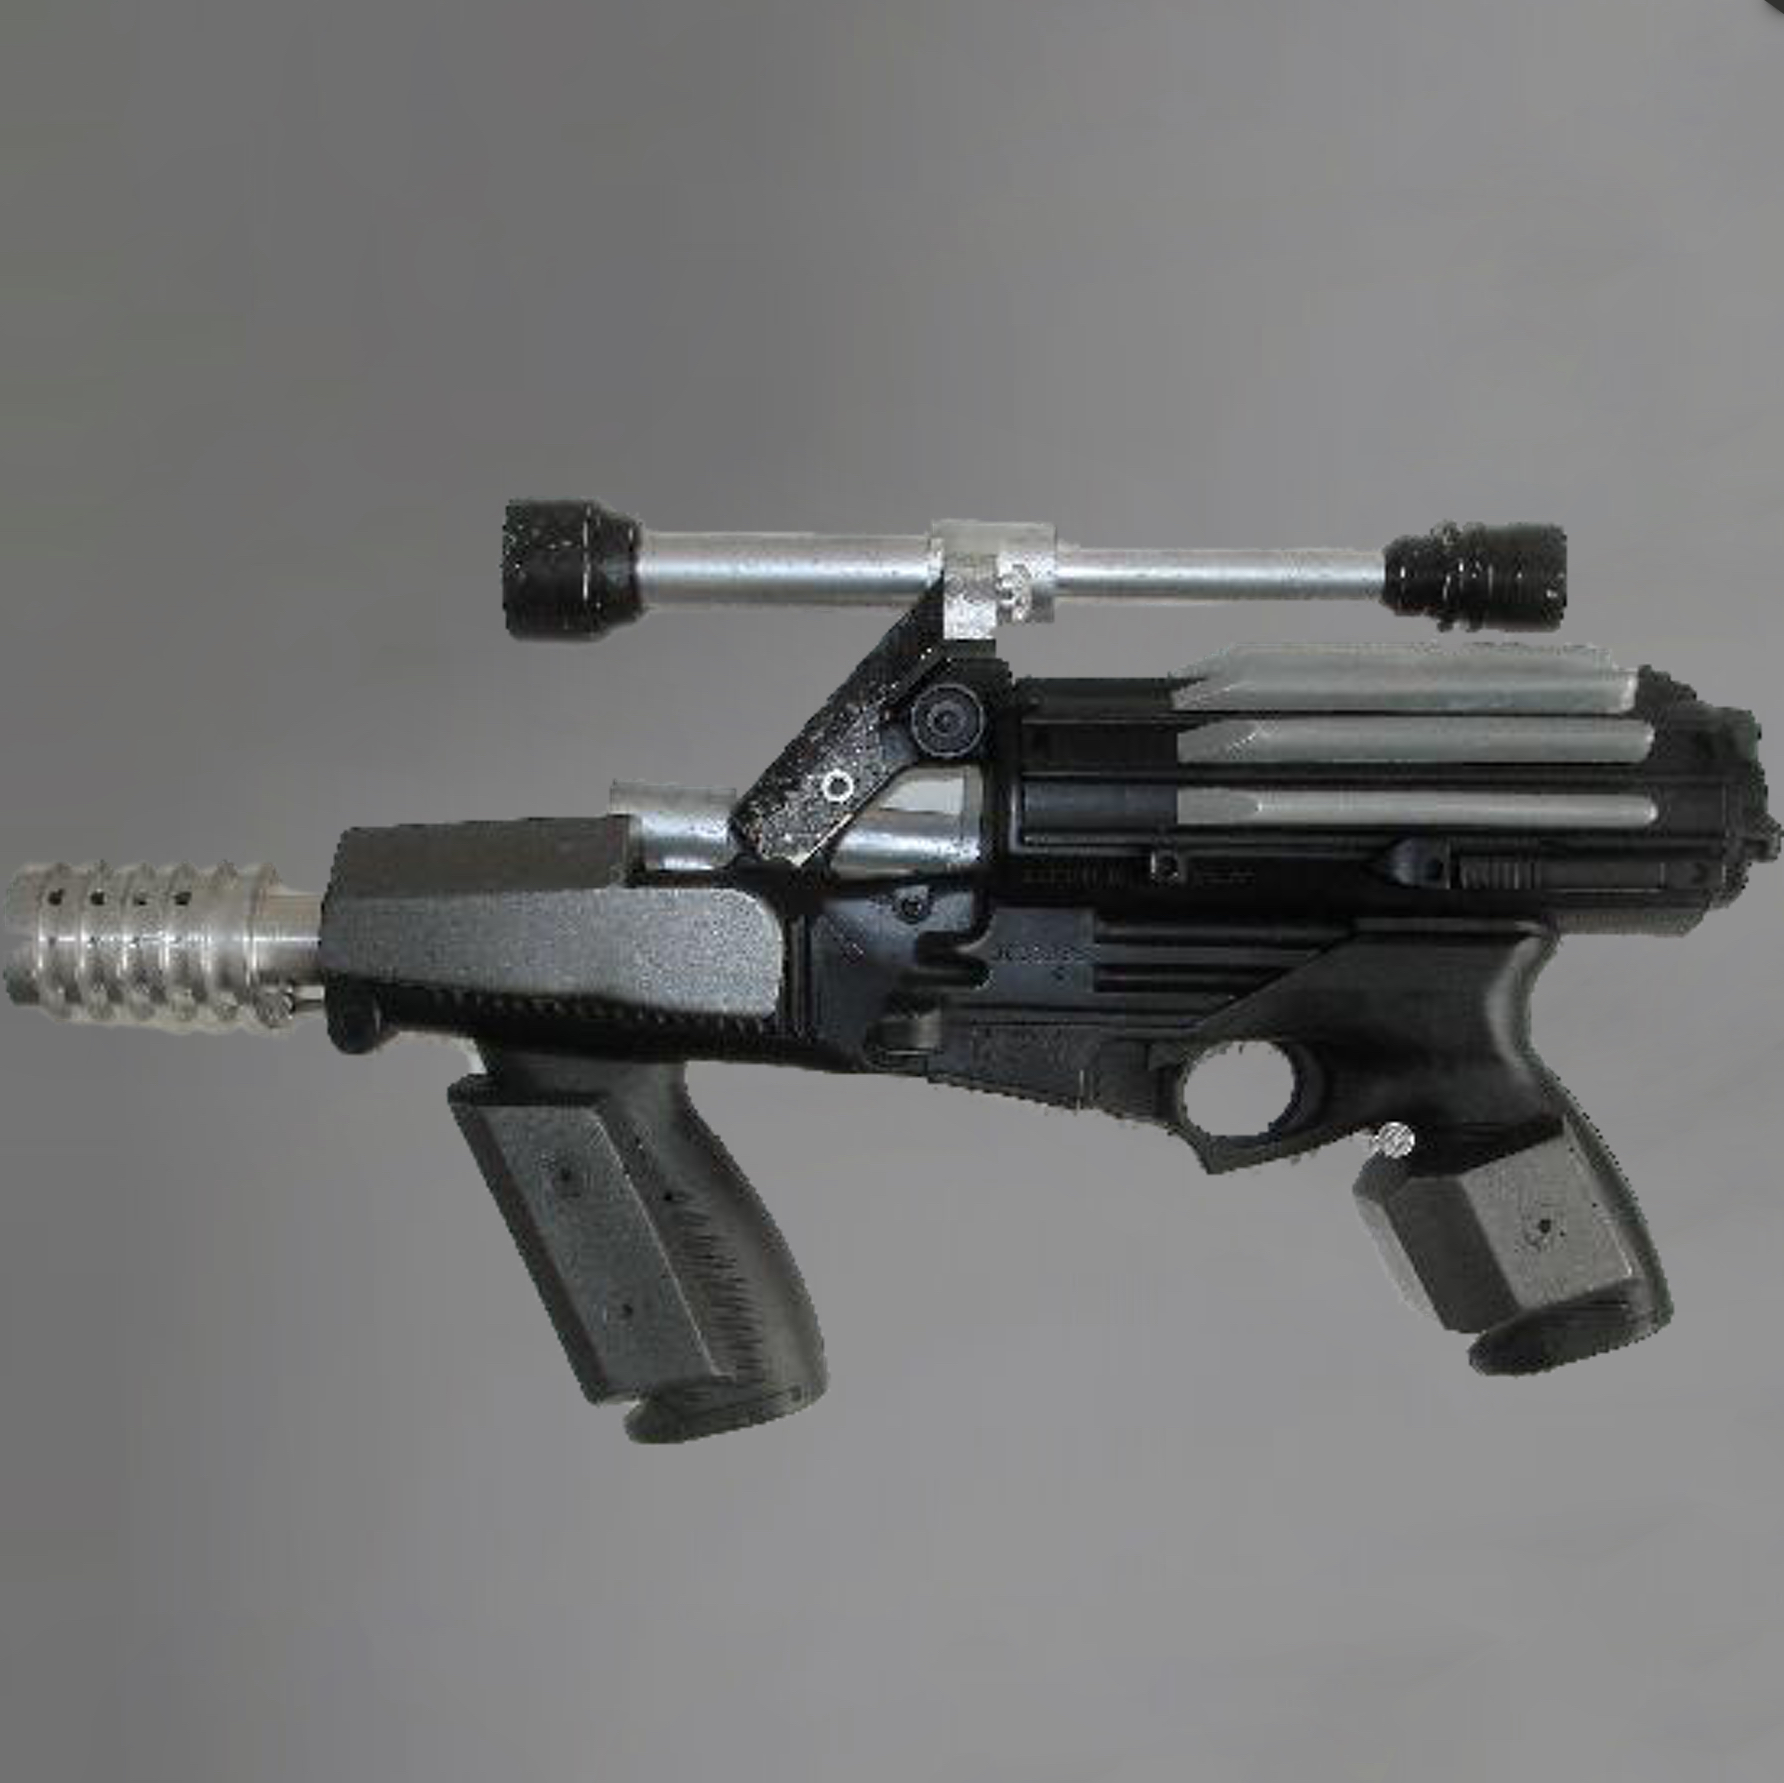 CR-2 Heavy Blaster Pistol (Repeating Blaster Pistol)